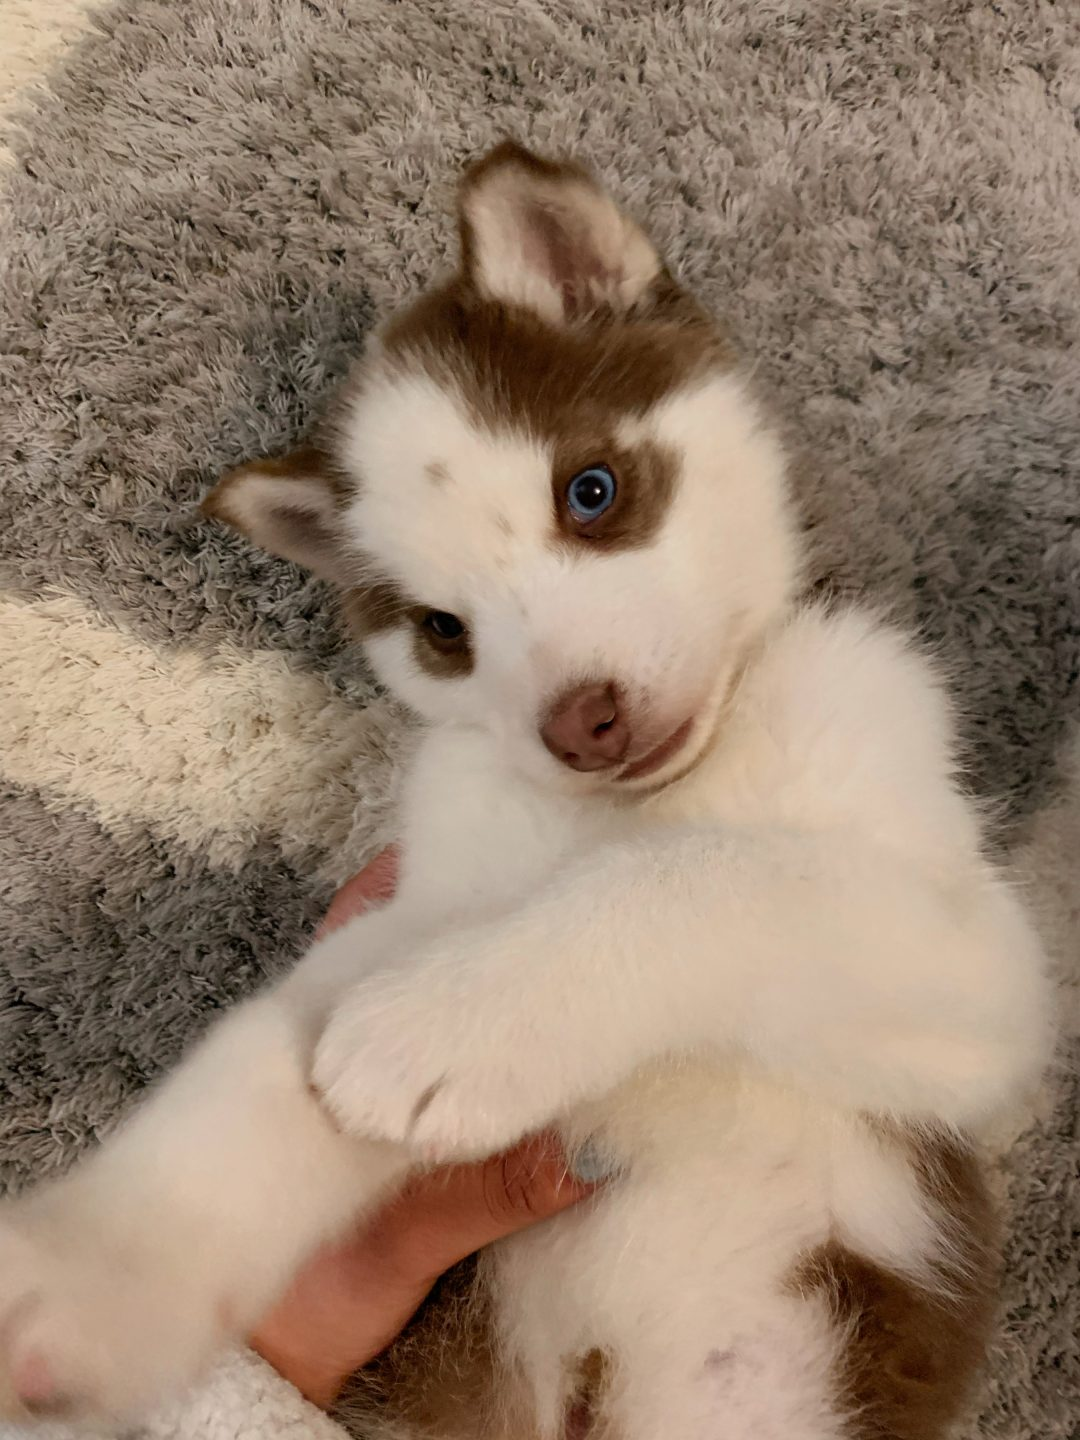 Sam - Siberian Husky pupper for sale near Fishers, Indiana